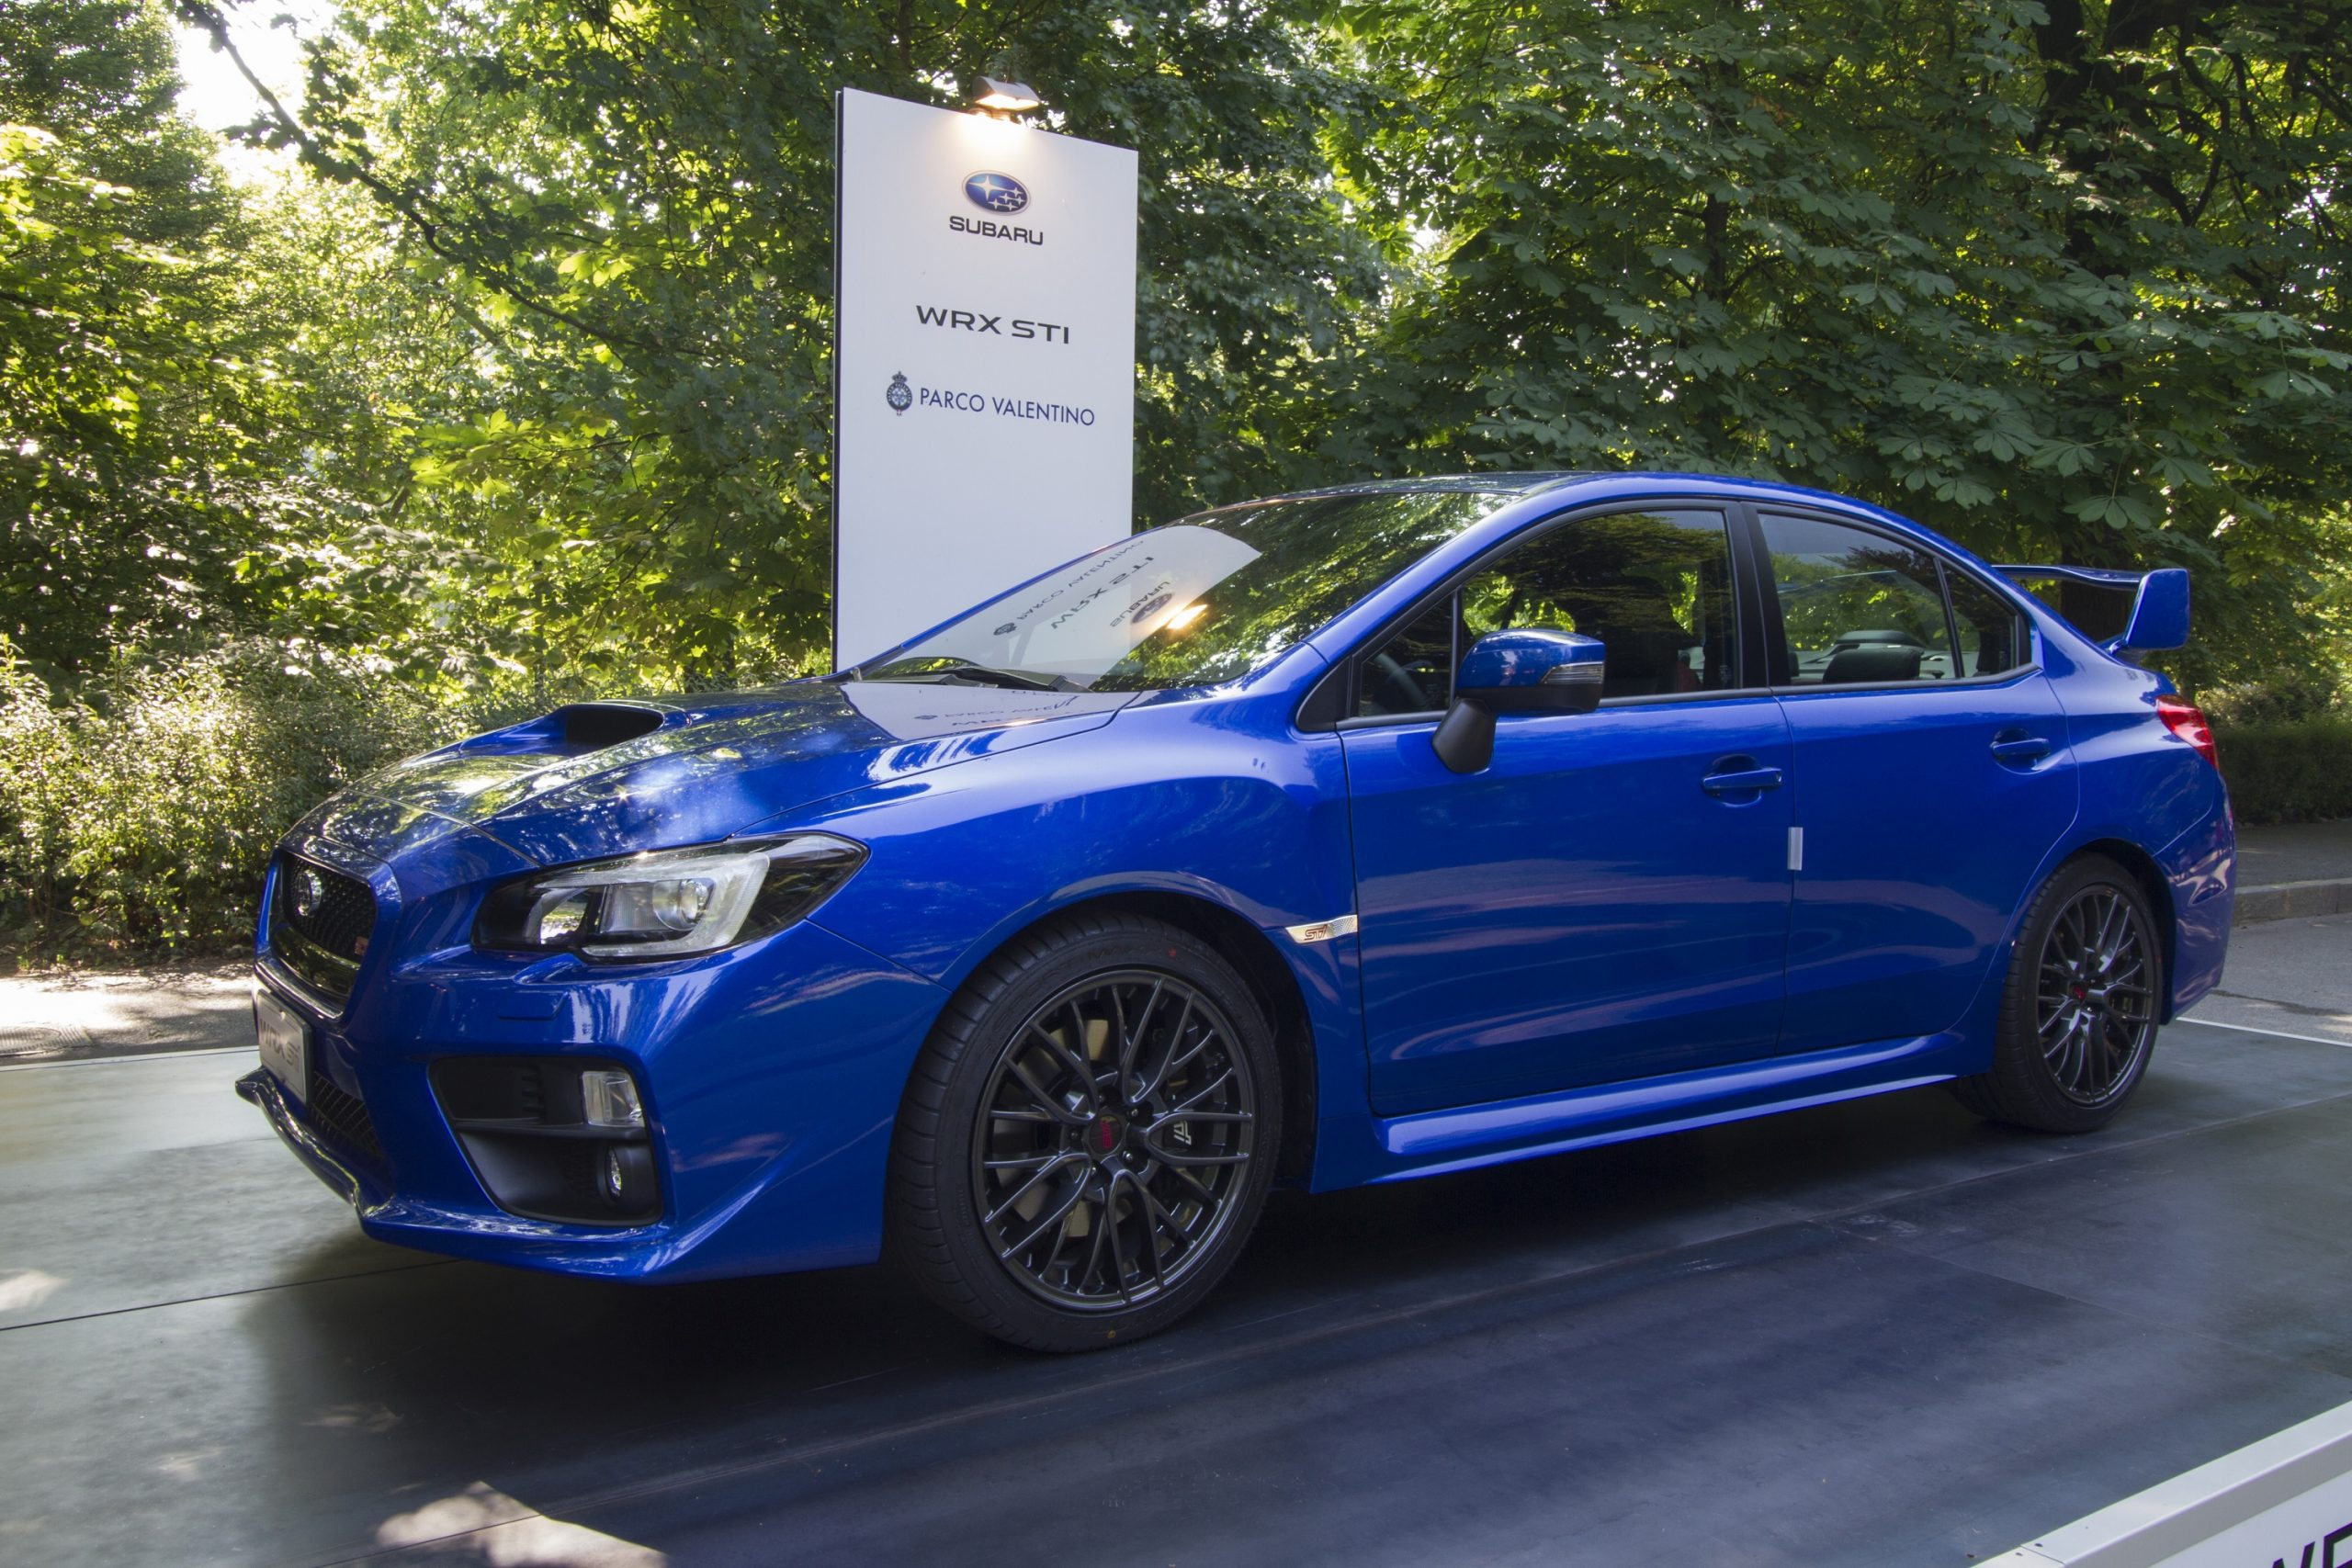 A blue Subaru WRX STI on a podium at an auto show shot from the front 3/4.